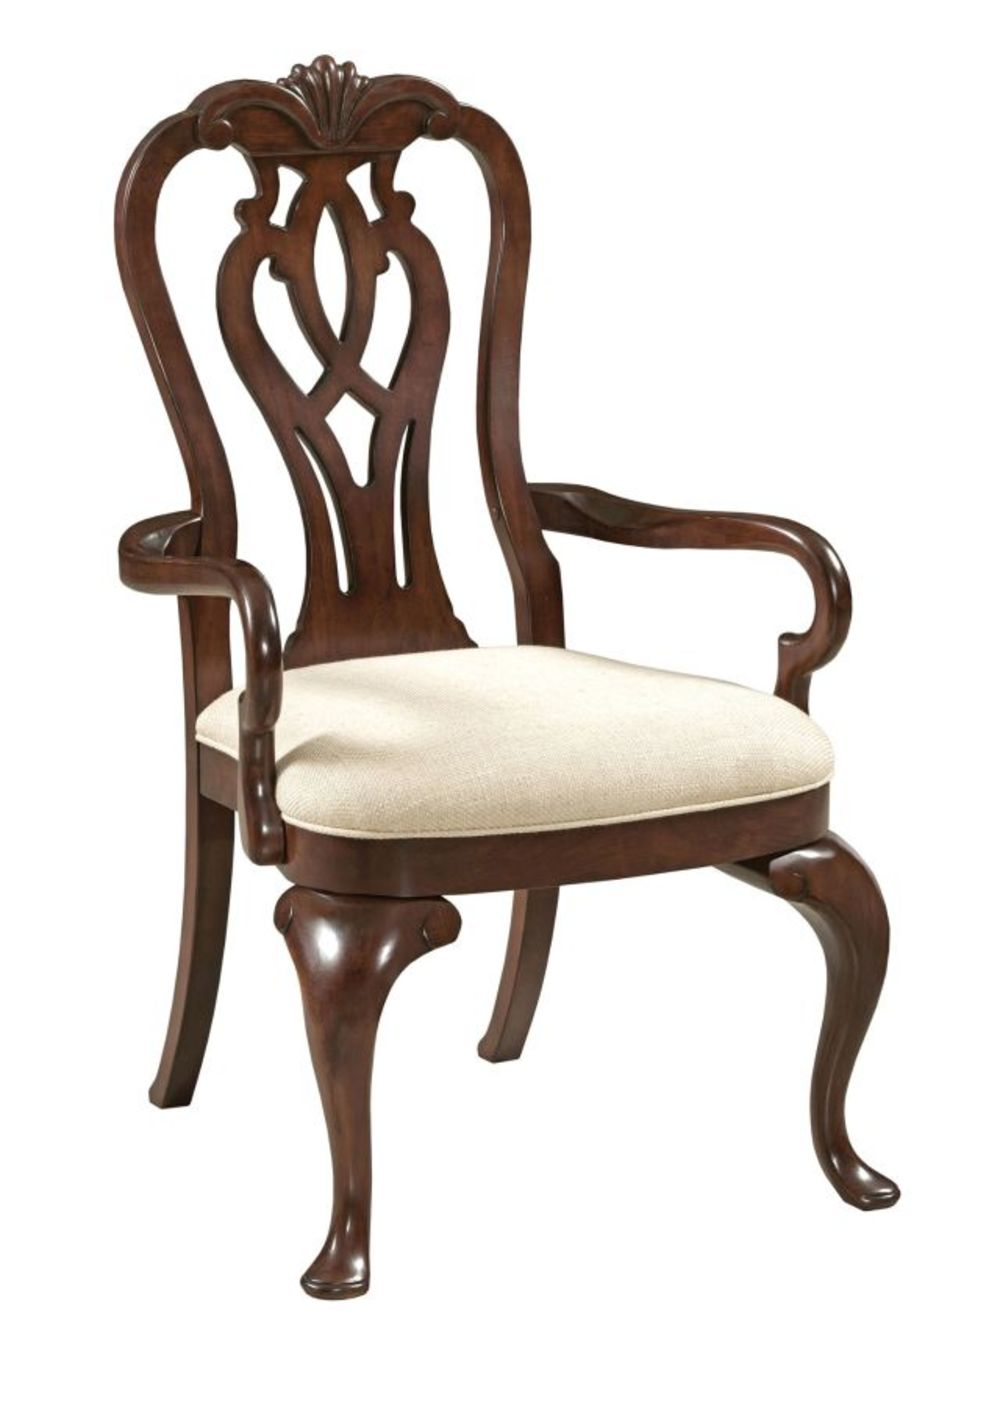 KINCAID FURNITURE CO, INC - Queen Anne Arm Chair